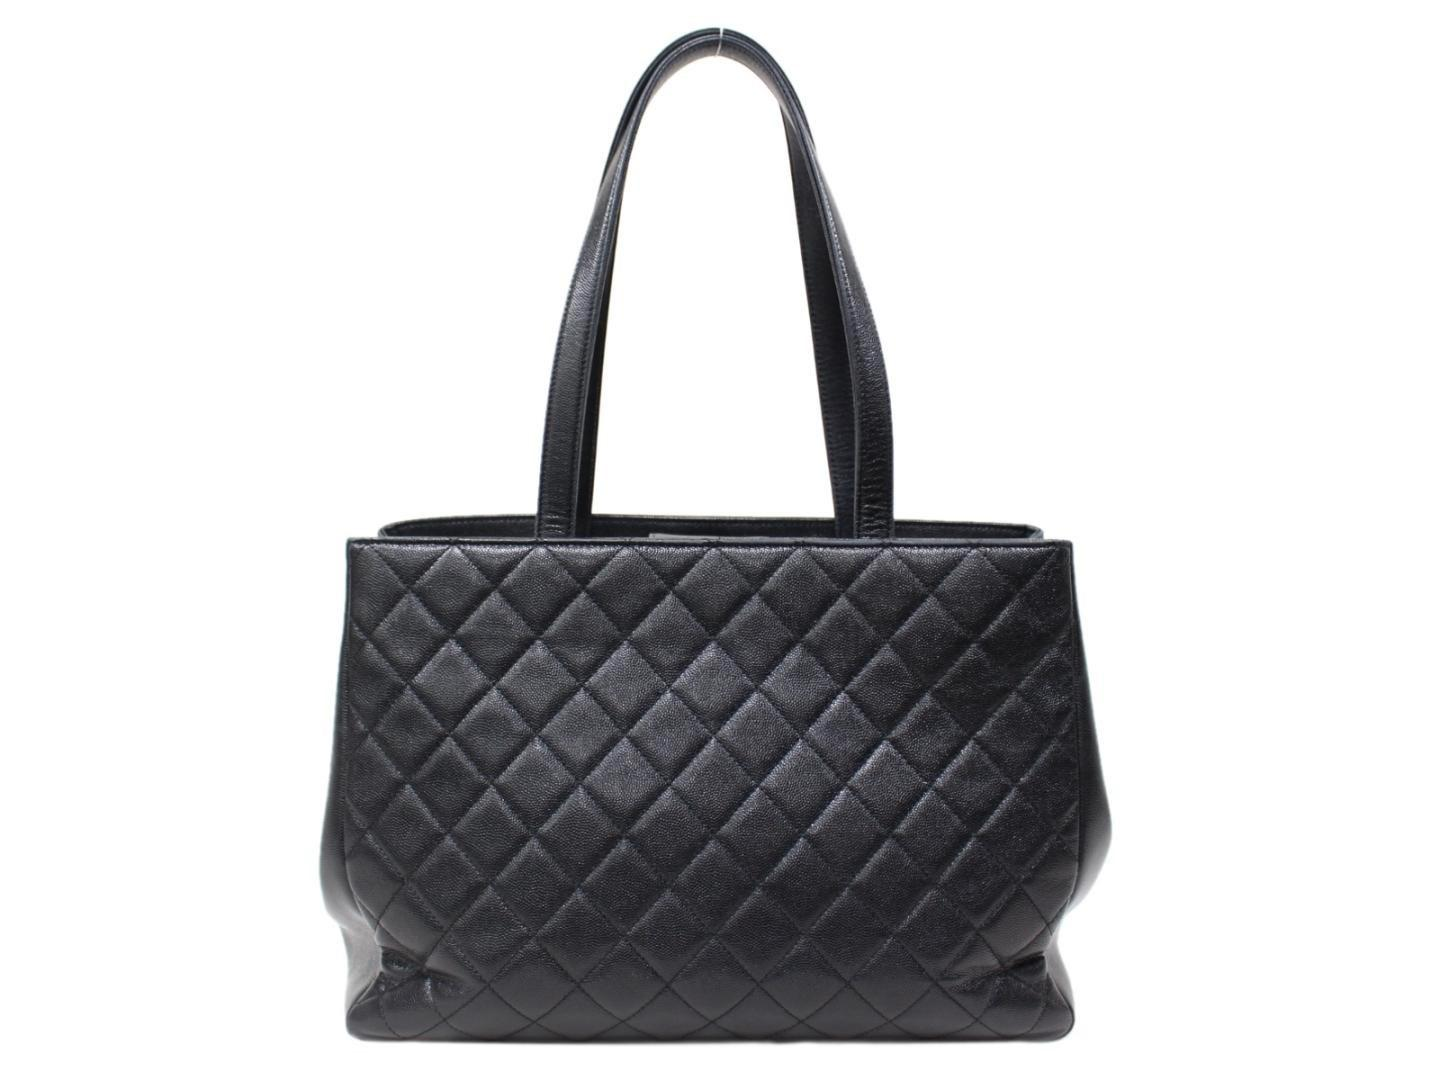 f3a757896368 Lyst - Chanel Shoulder Tote Bag Quilted Caviar Leather Black in Black